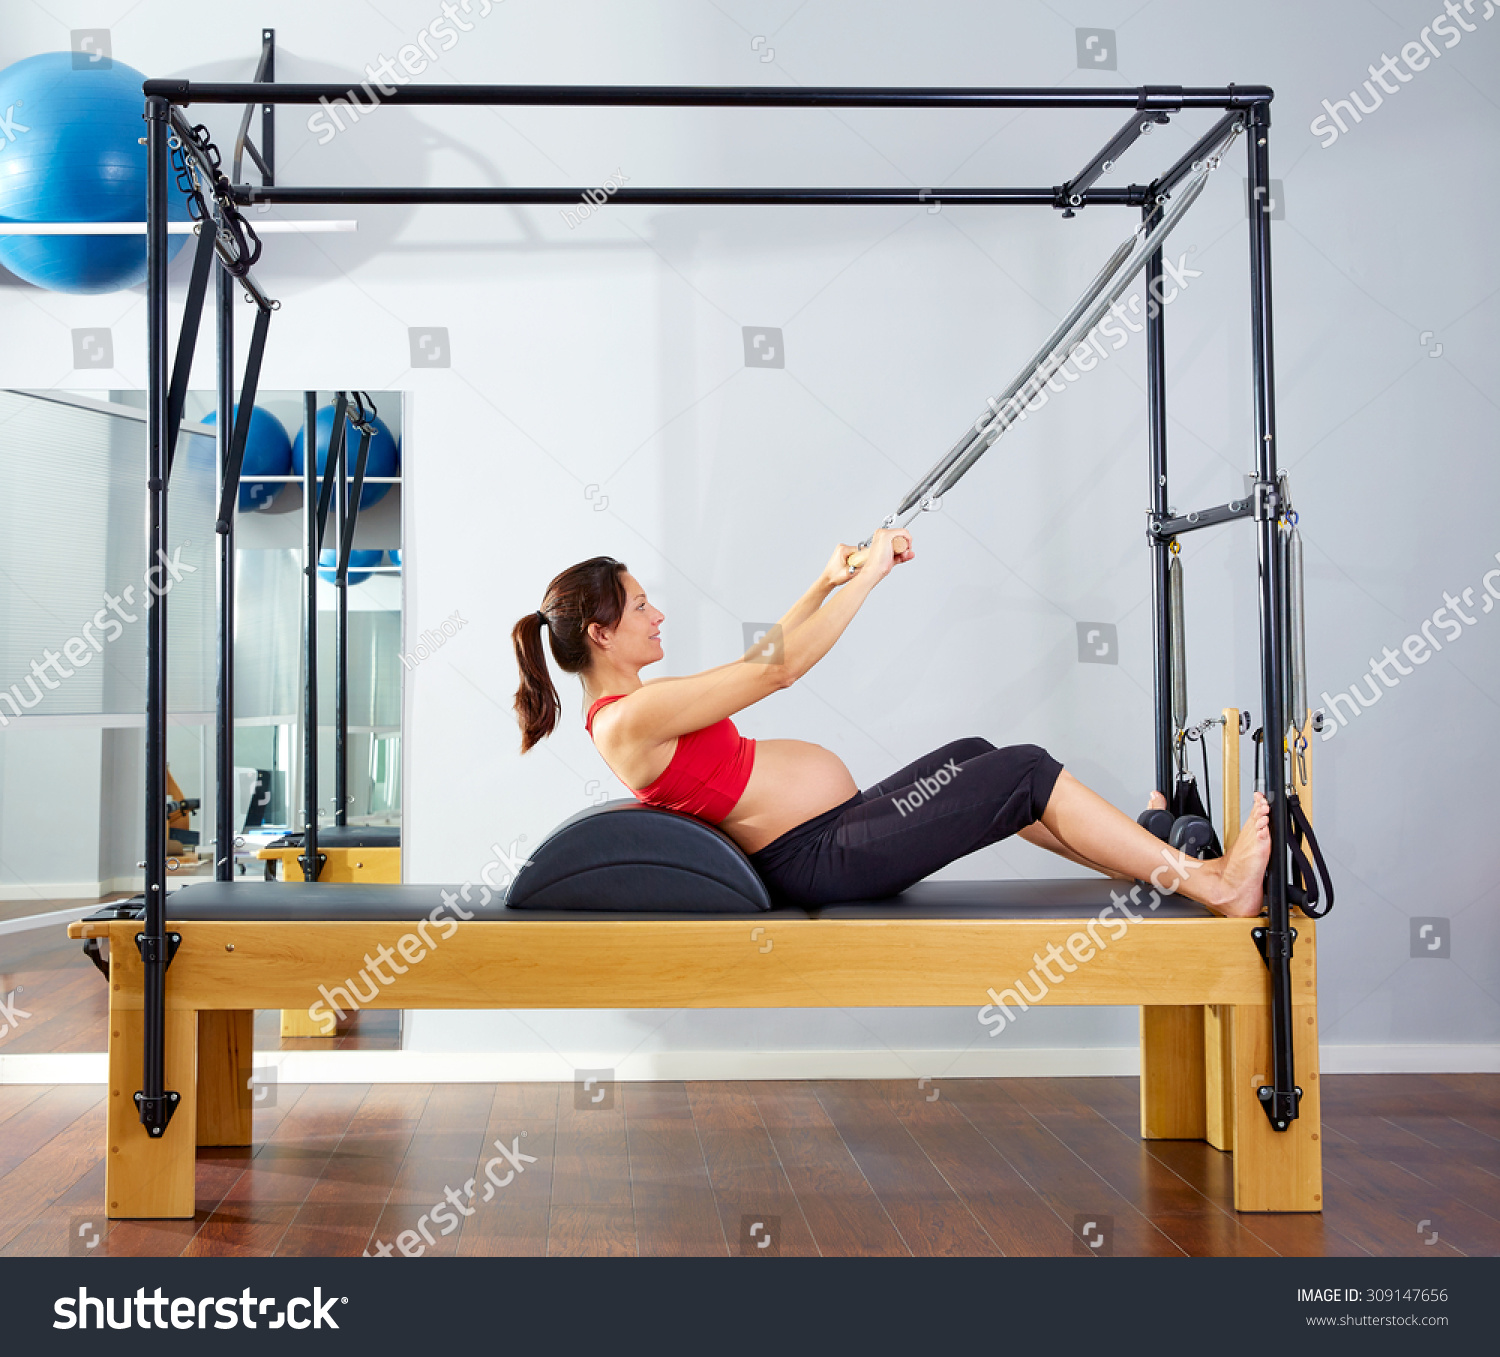 Woman Pilates Chair Exercises Fitness Stock Photo: Pregnant Woman Pilates Reformer Roll Up Cadillac Exercise